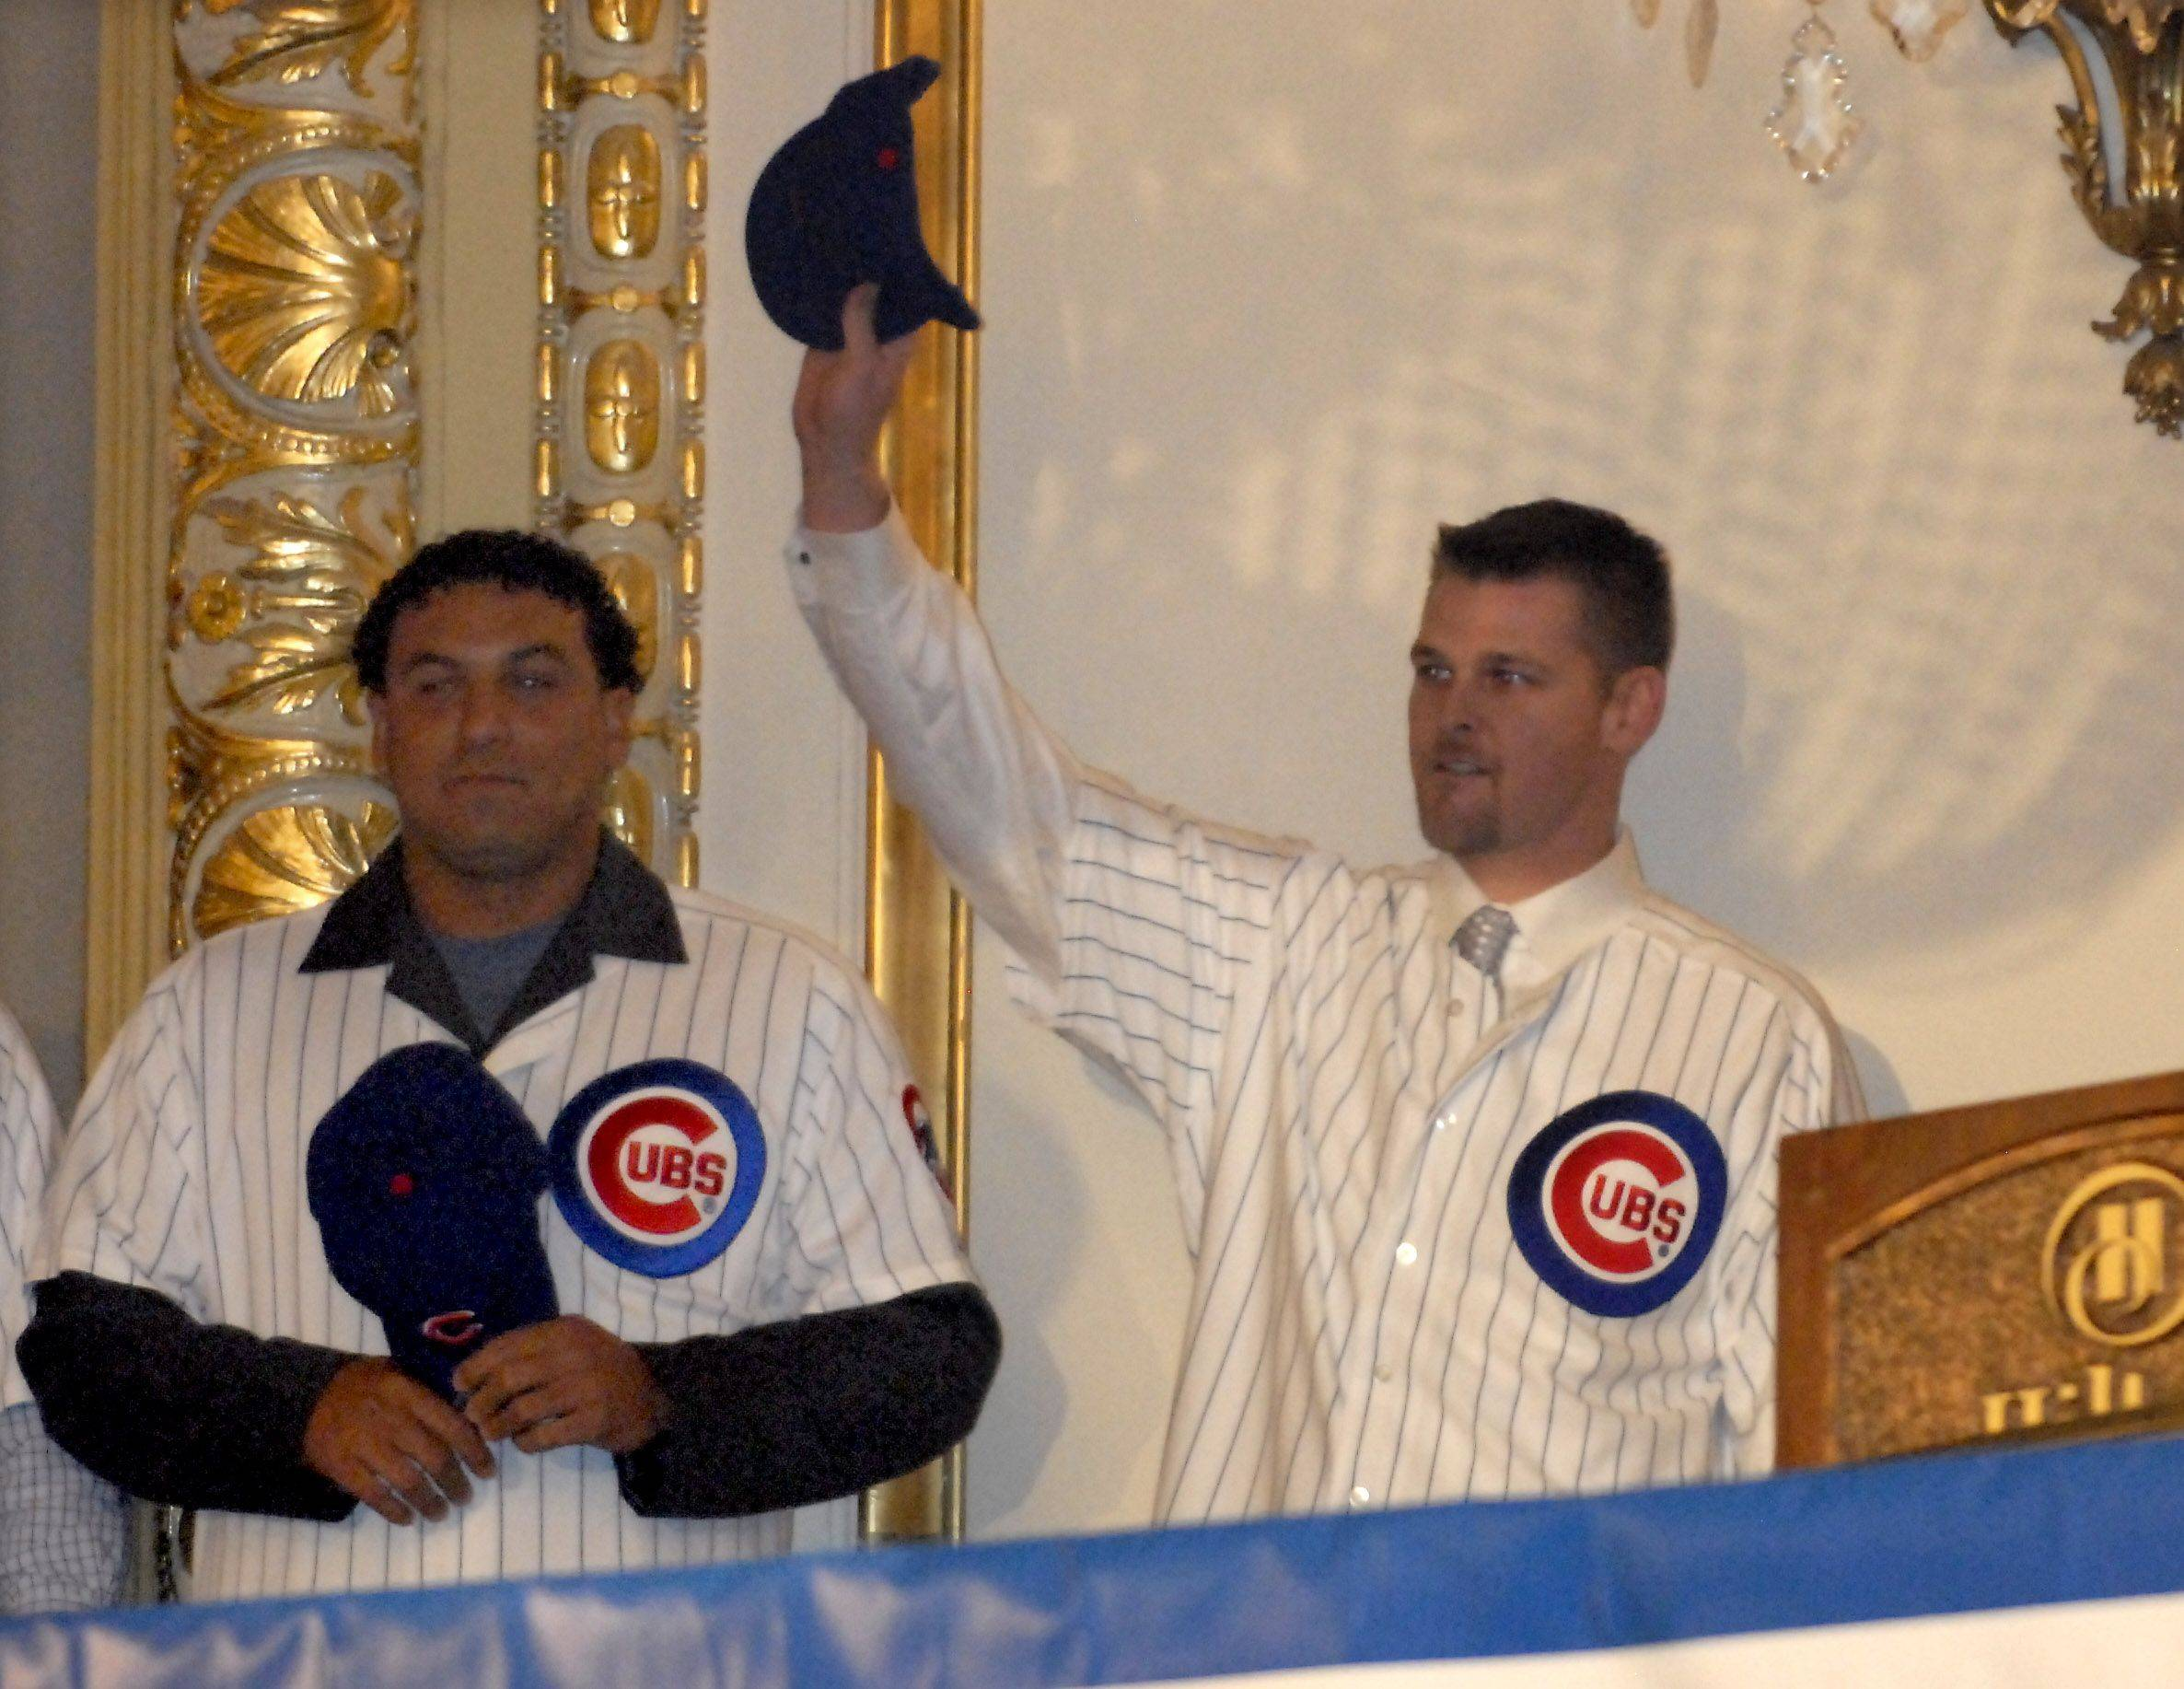 Pitchers Carlos Zambrano and Kerry Wood salute fans.